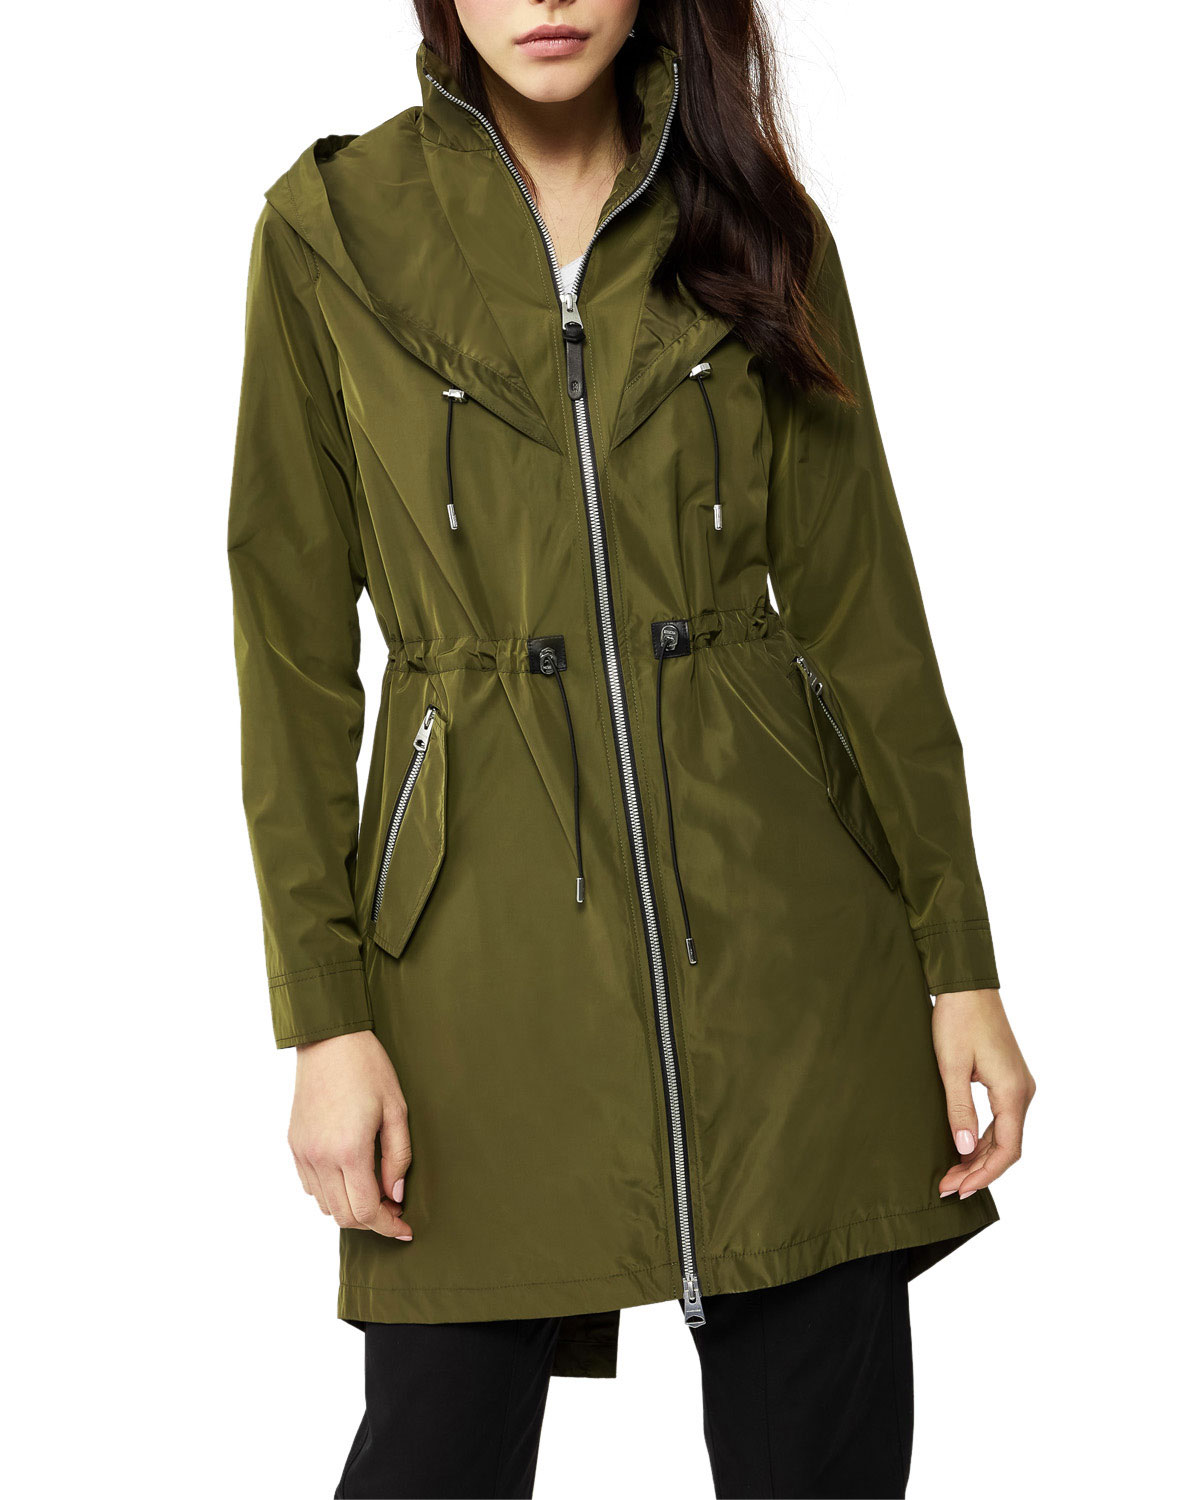 Mackage Franki Hooded Fishtail Parka Rain Jacket